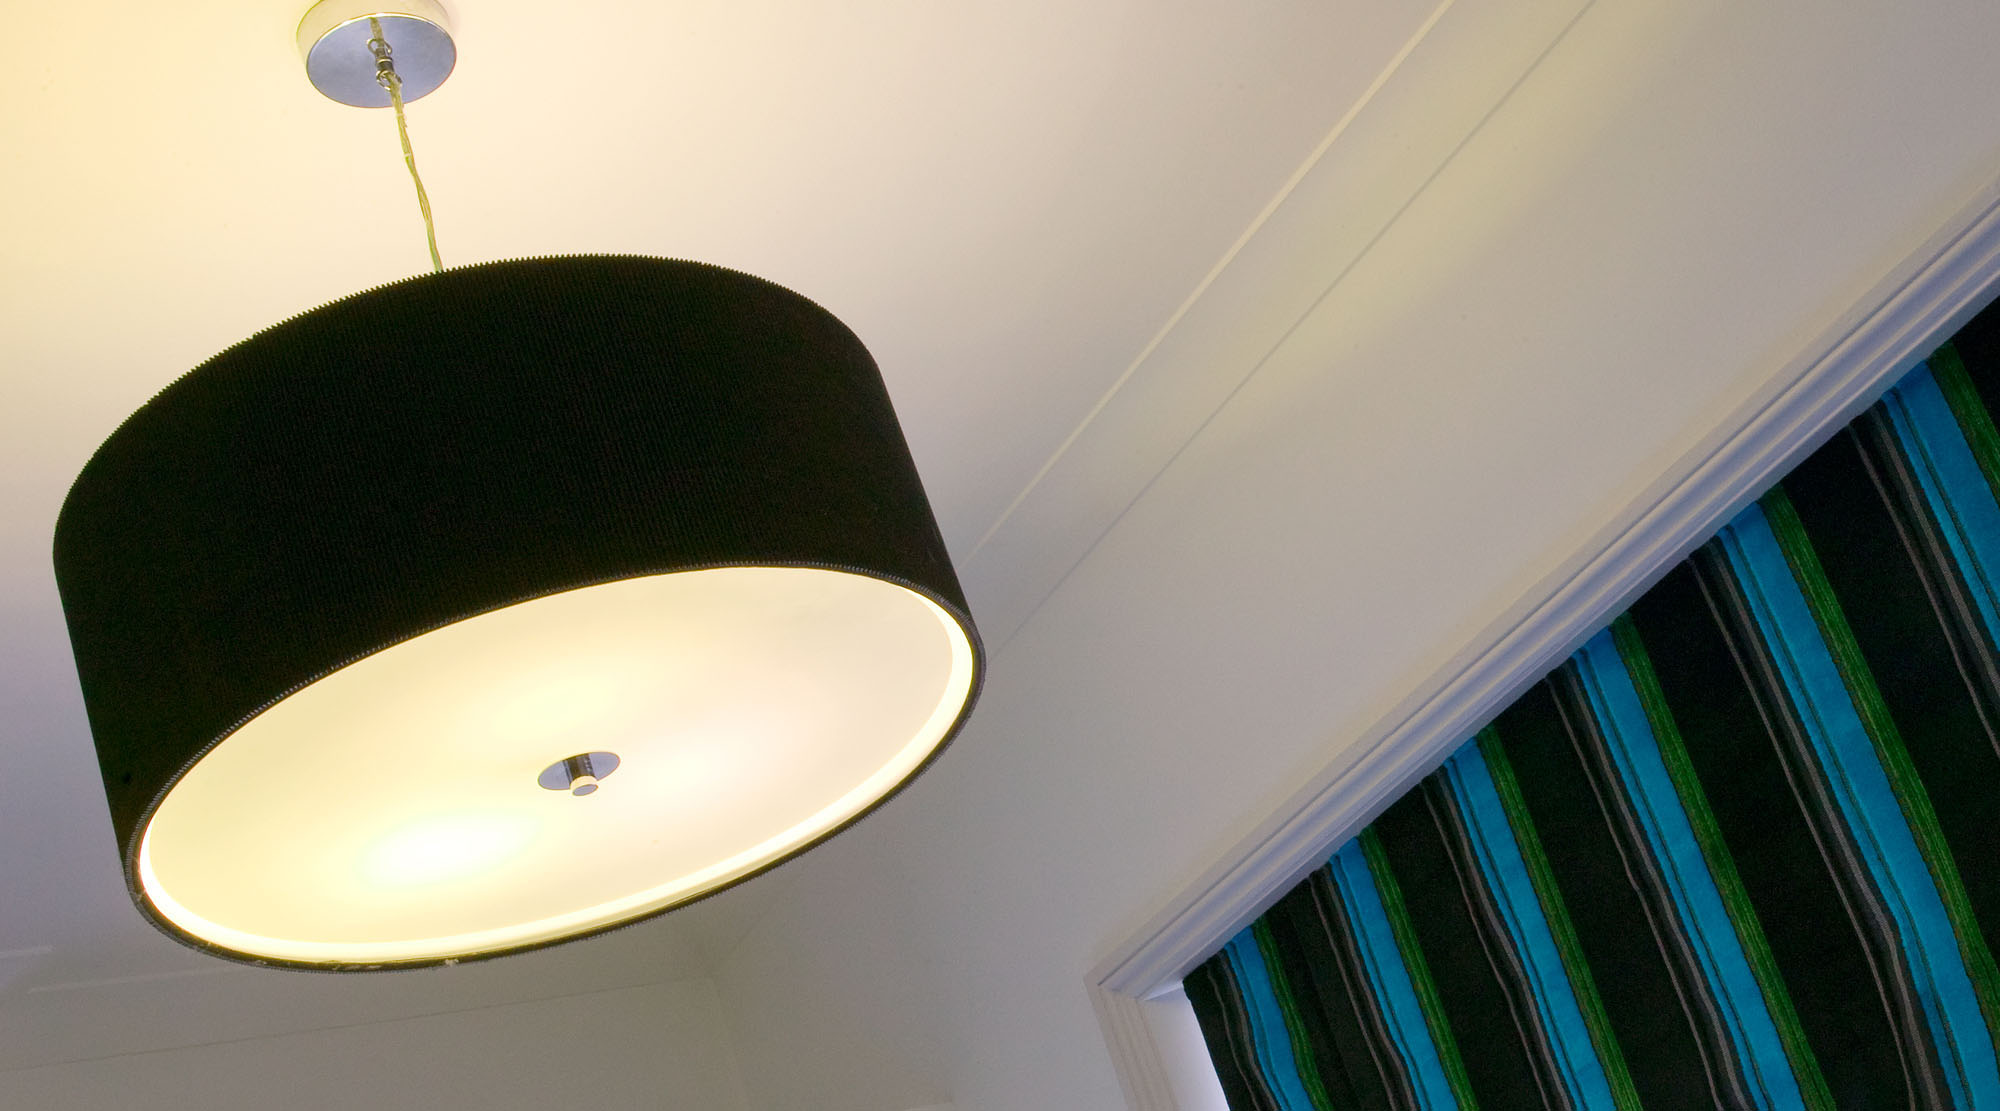 Large round black pendant shade in a bedroom setting.